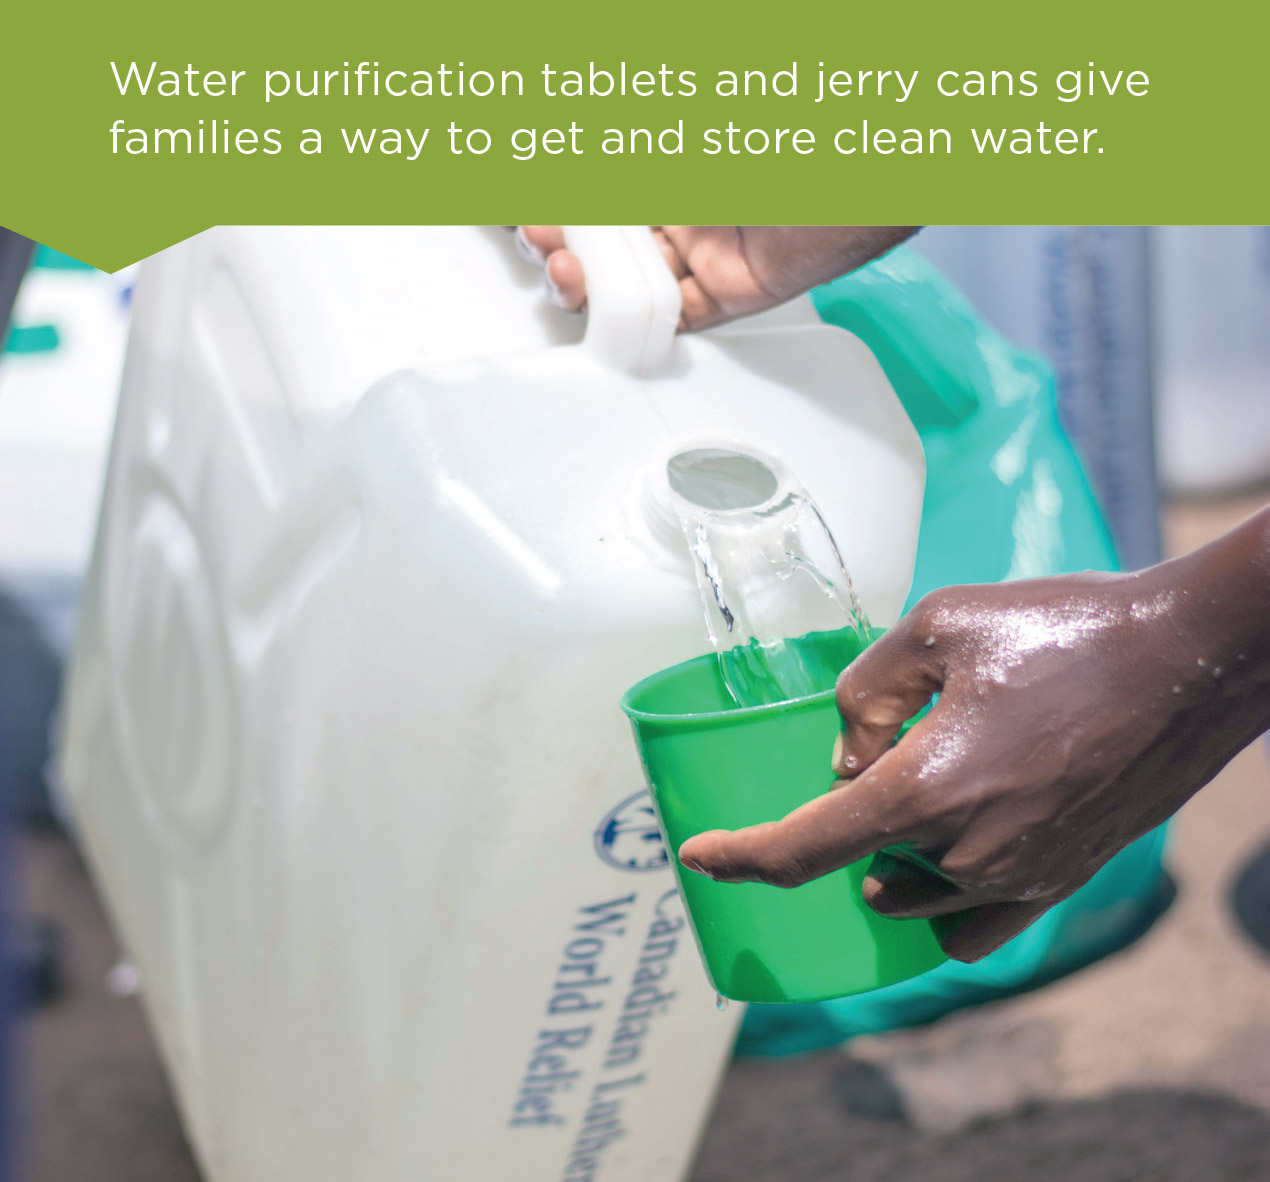 Water purification tablets and jerry cans give families a way to get and store clean water.